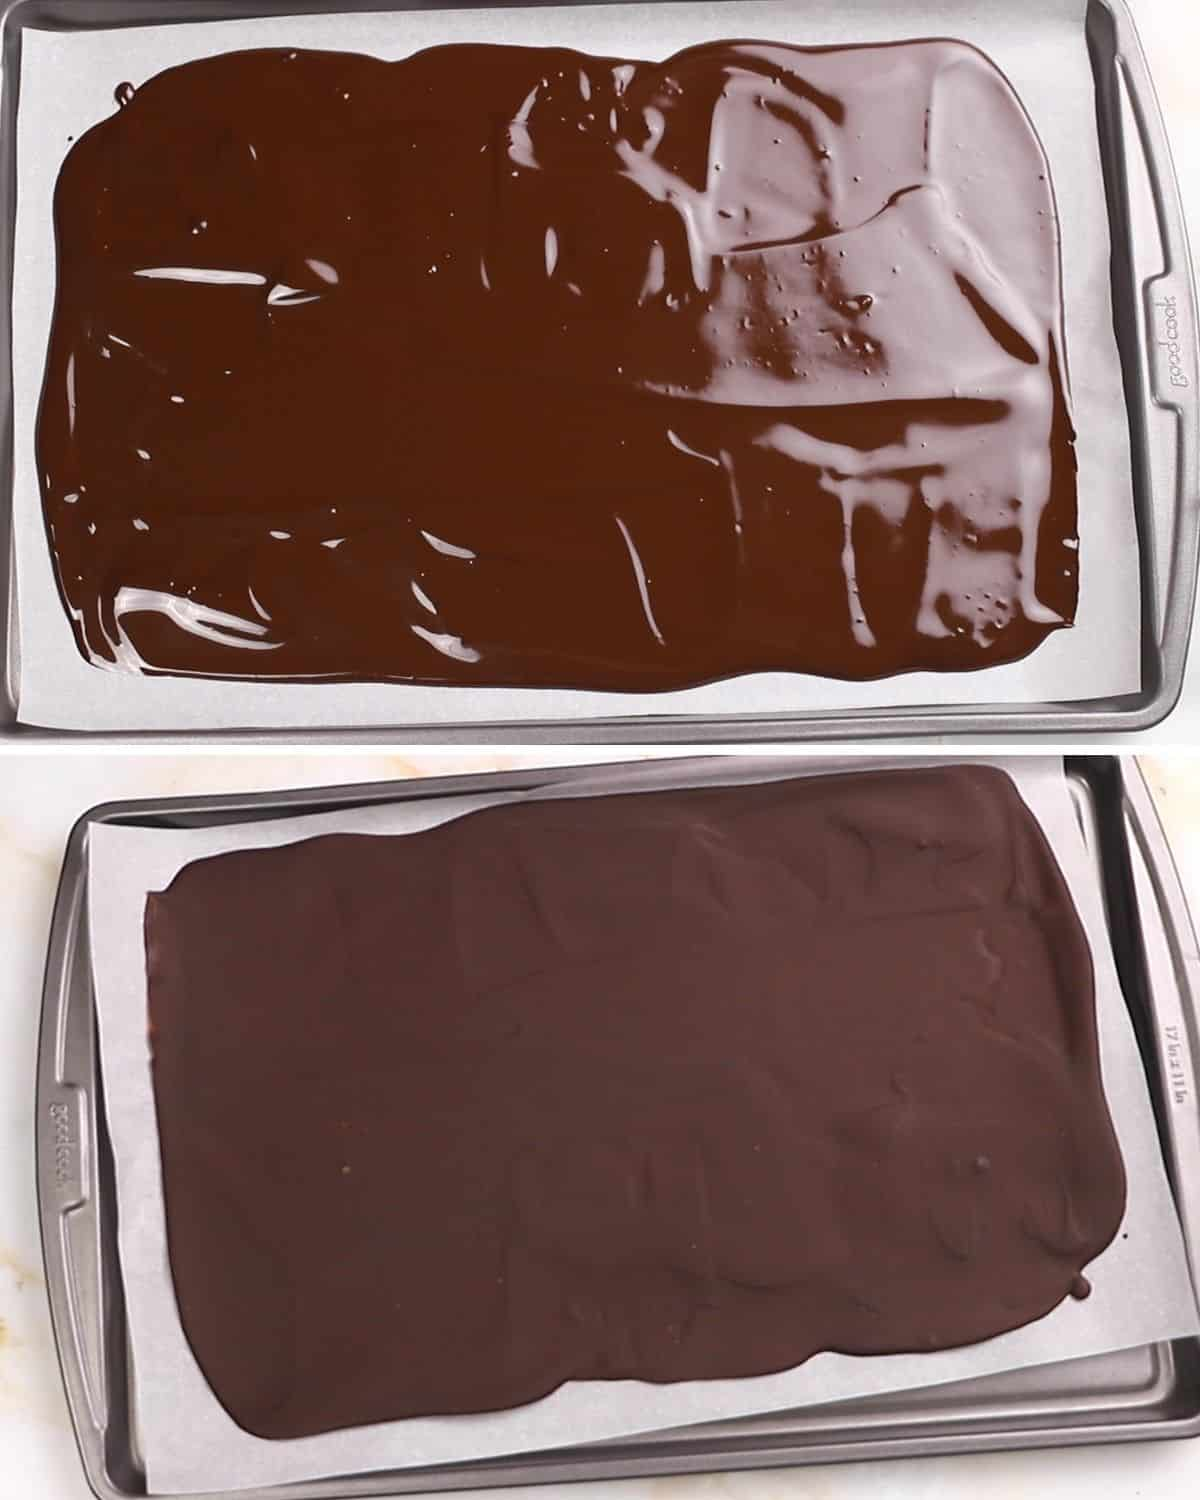 A collage of two images showing how to spread and chill dark chocolate.